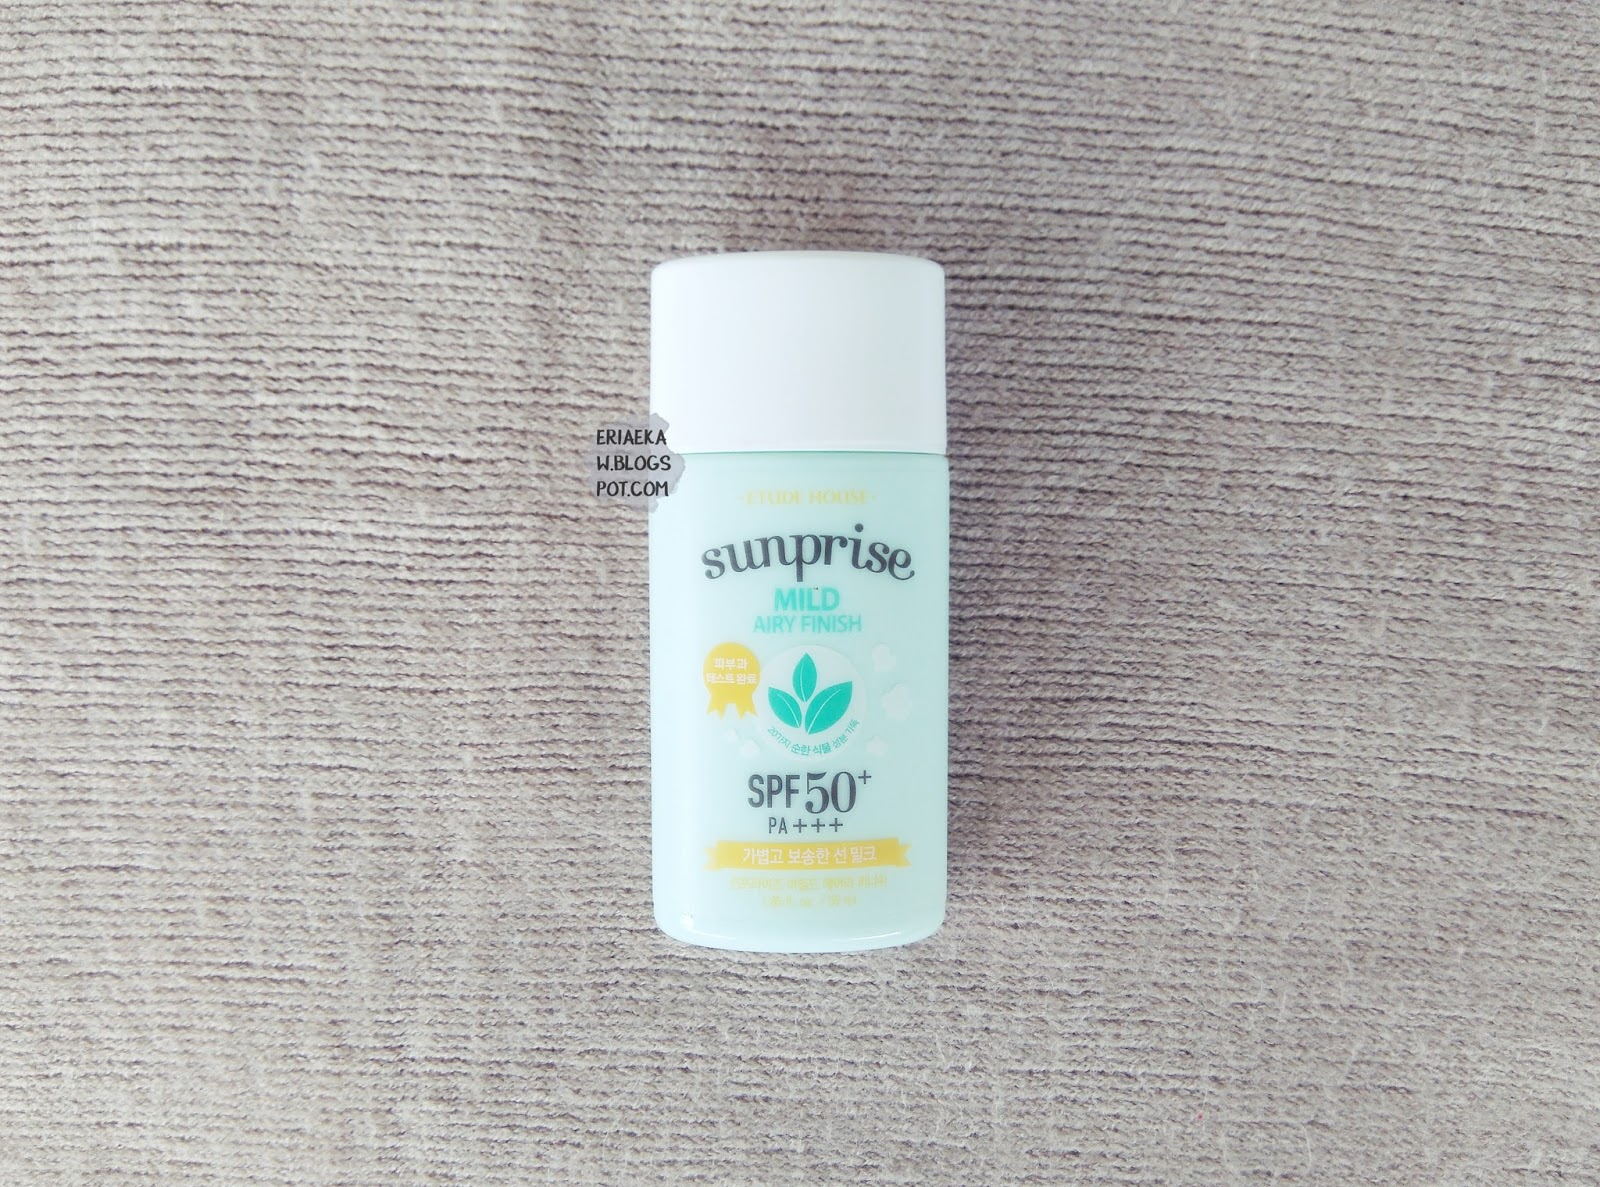 REVIEW Etude House Sunprise Mild Airy Finish SPF 50+ PA+++